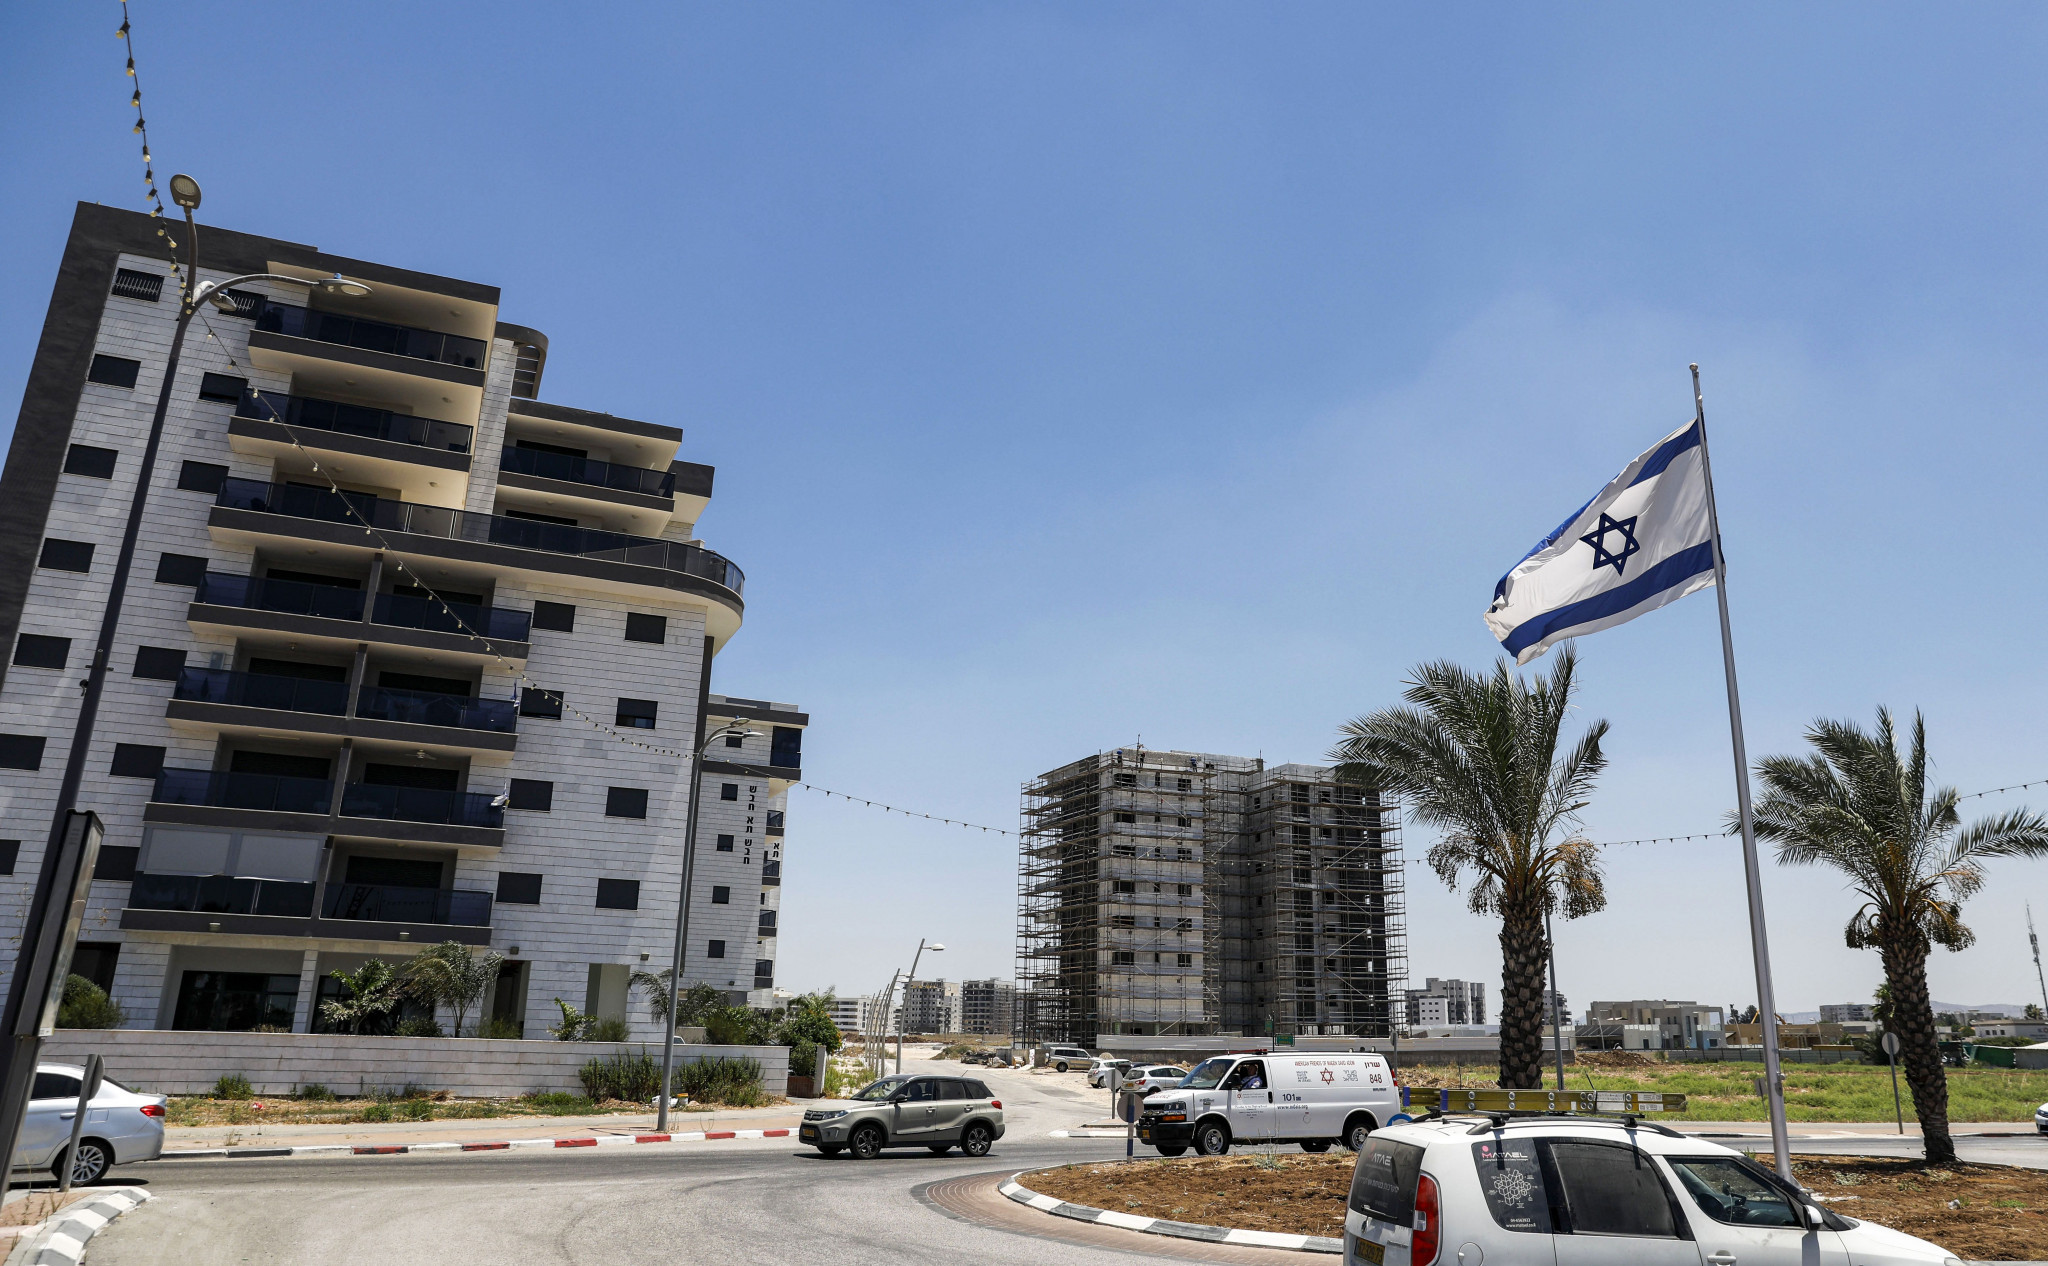 The Israeli town of Afula was due to host the event ©Getty Images